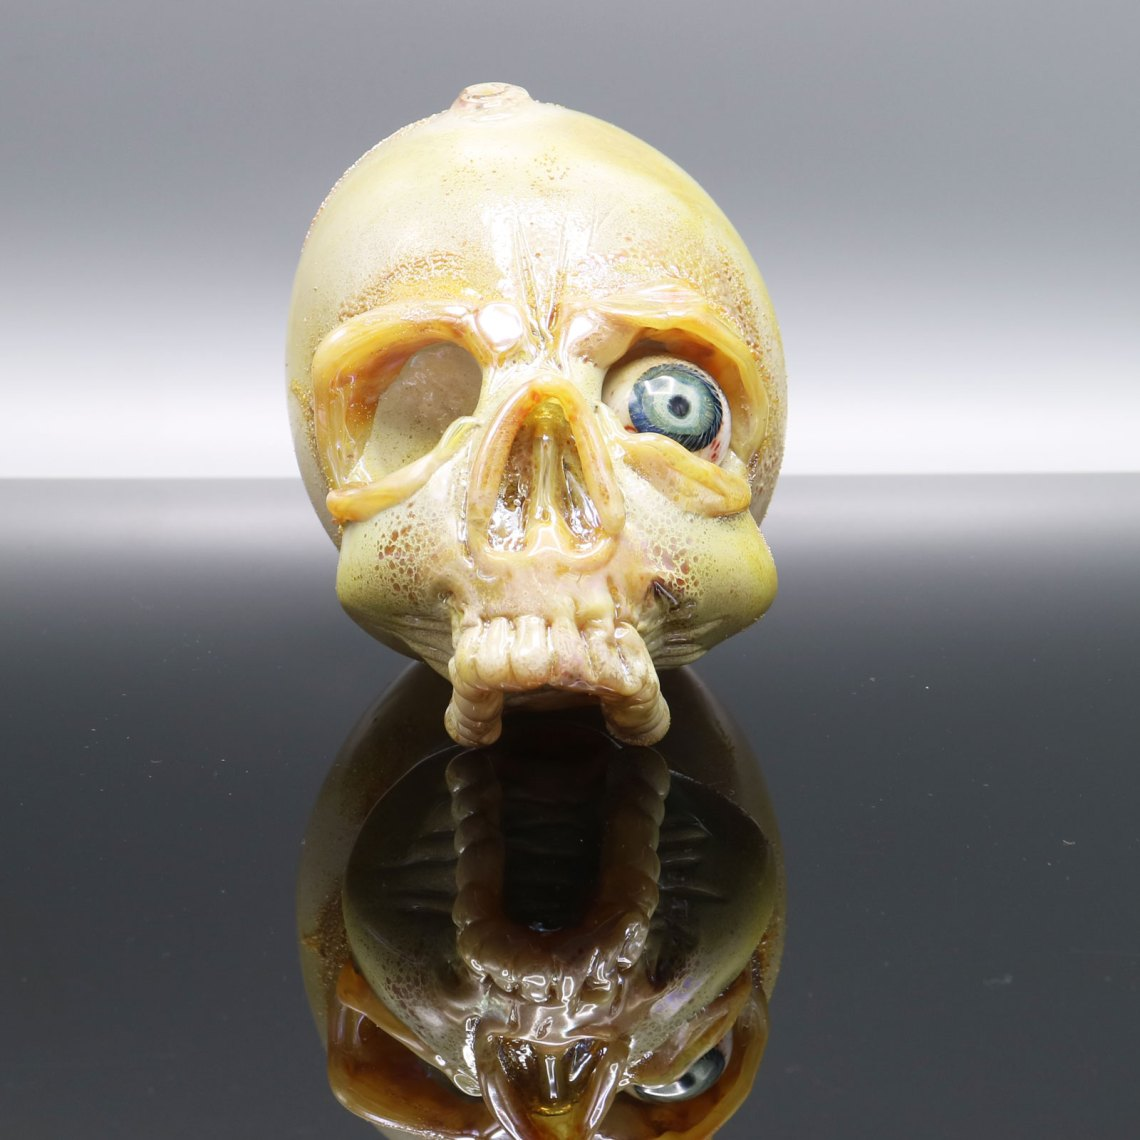 Jonny Carrcass – Functional One Eye Skull Sculpture